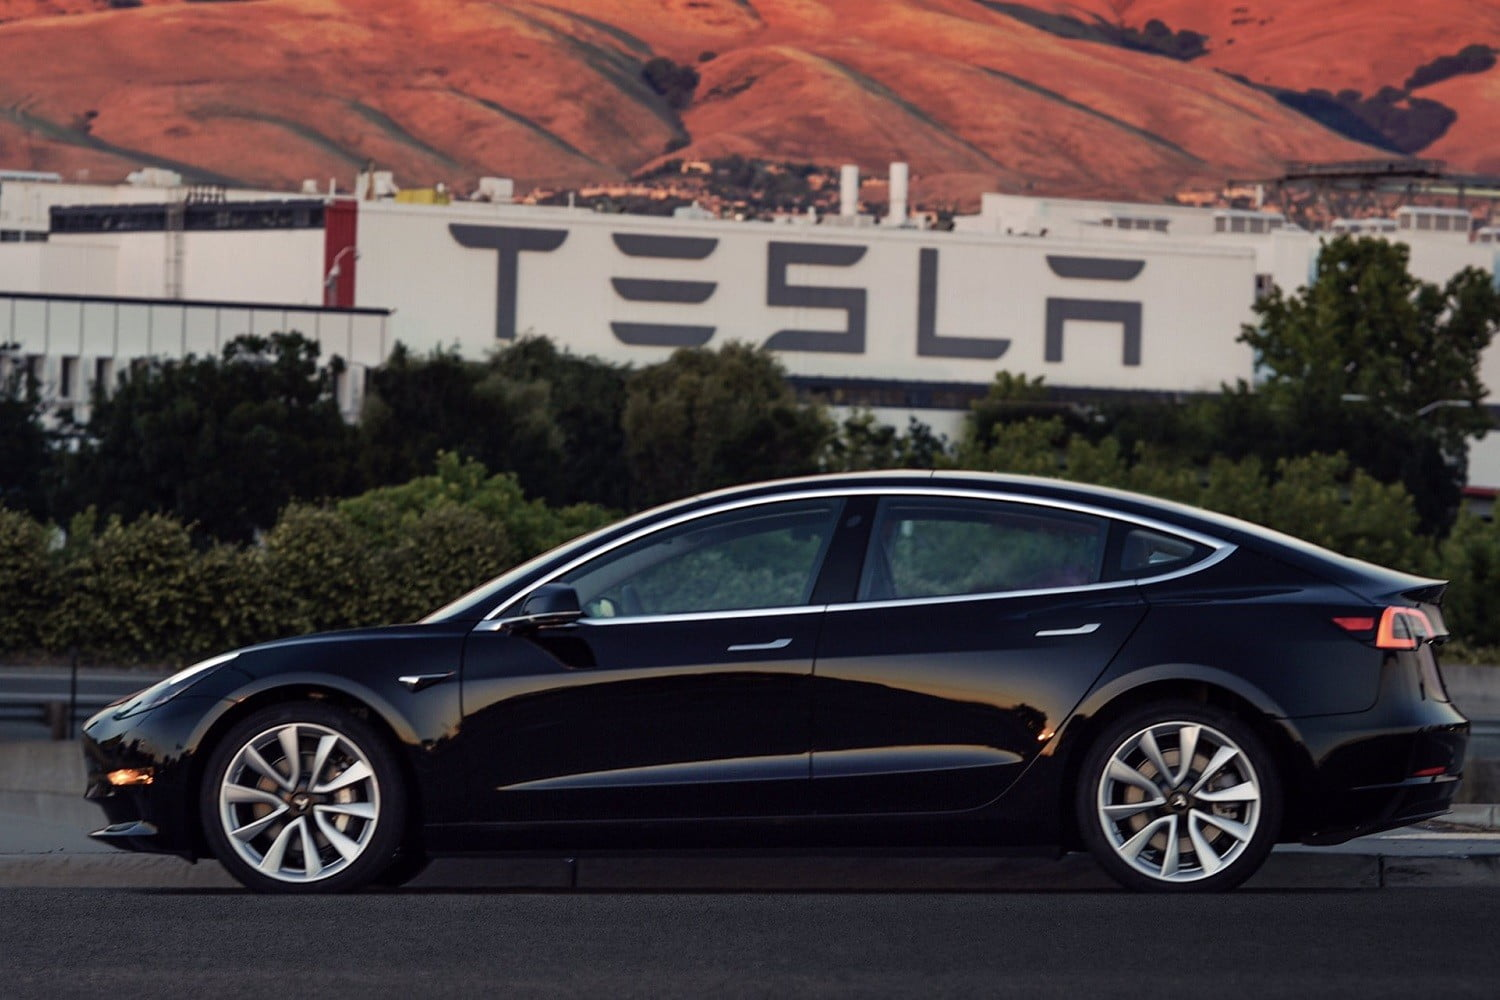 Owners of older Teslas claim the vehicles have been breaking down